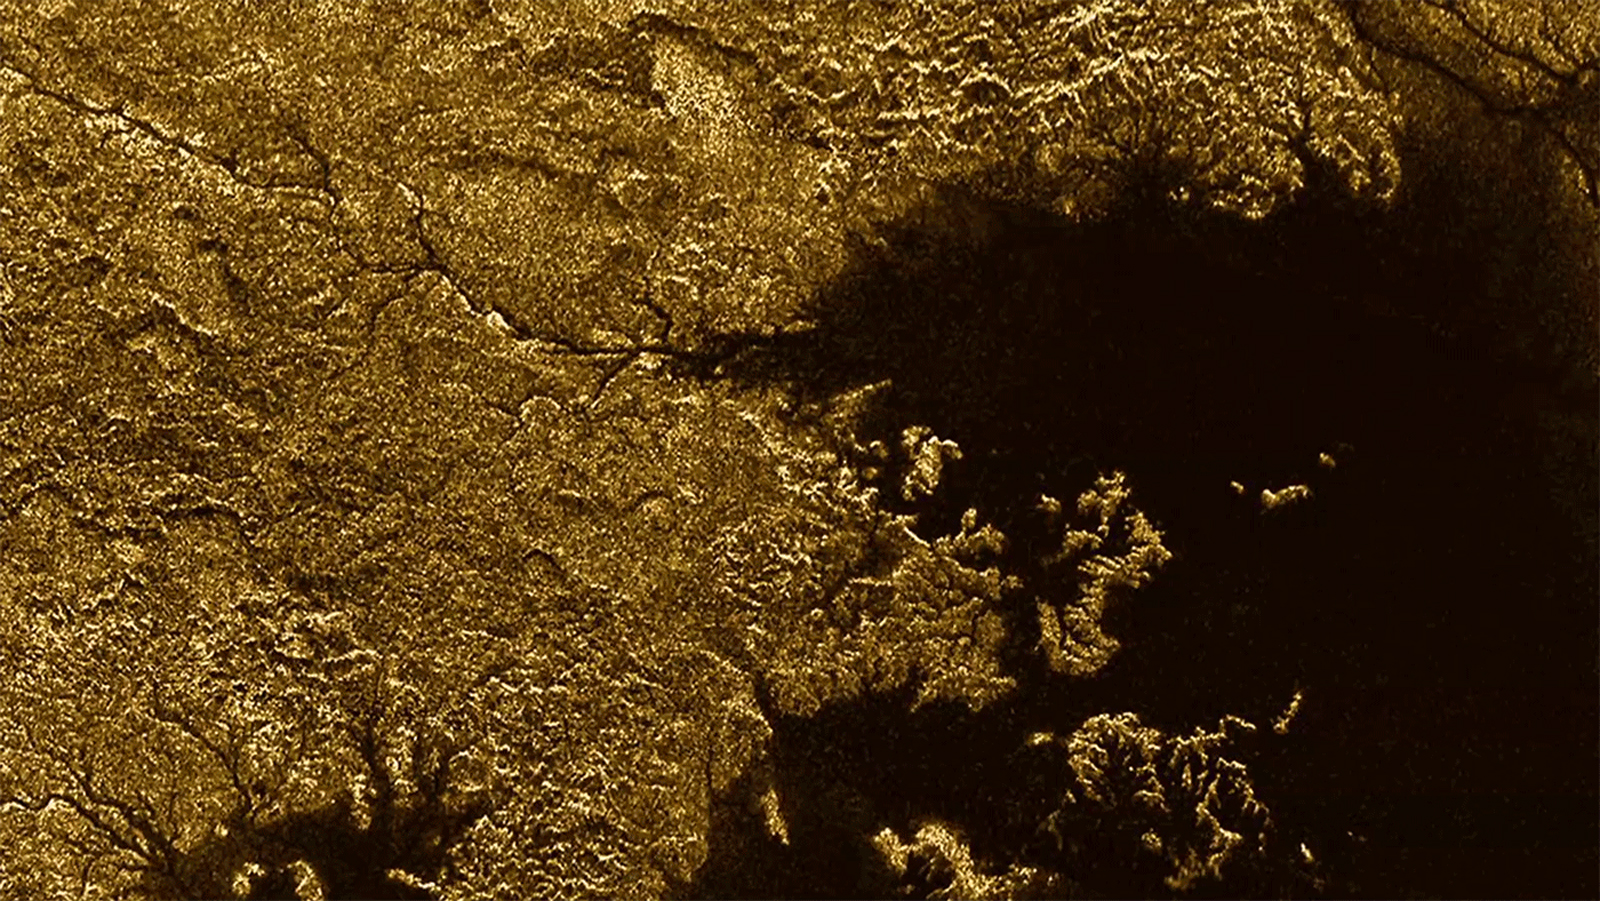 The large hydrocarbon sea named Ligeia Mare on Saturn's moon Titan, as photographed by NASA's Cassini spacecraft.